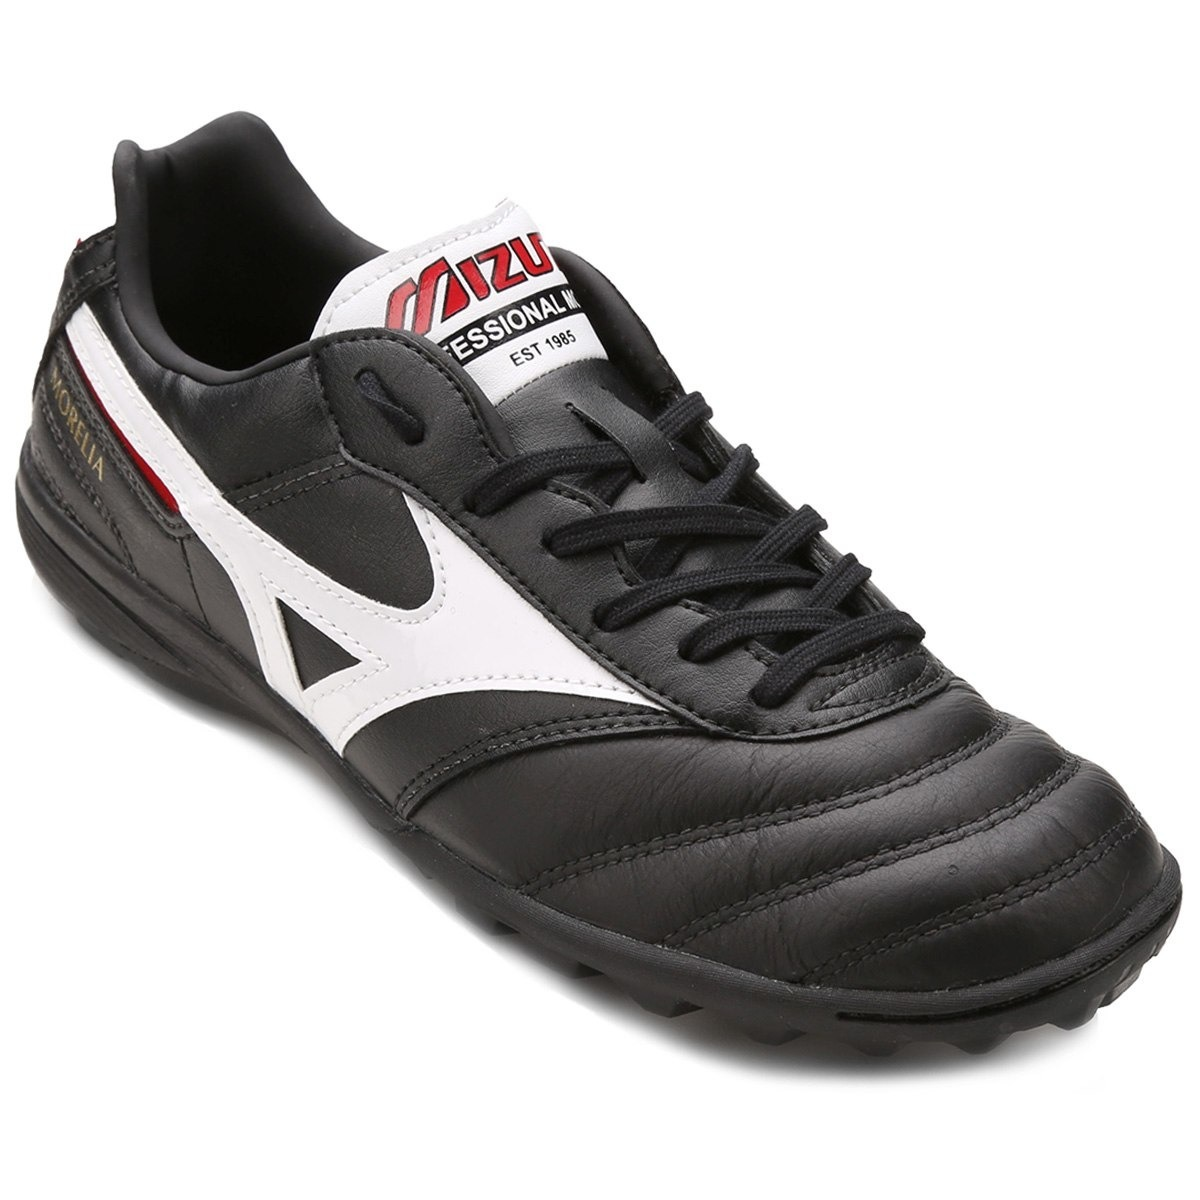 chuteira mizuno morelia elite 2 as society - original. Carregando zoom. 79330bae39e25